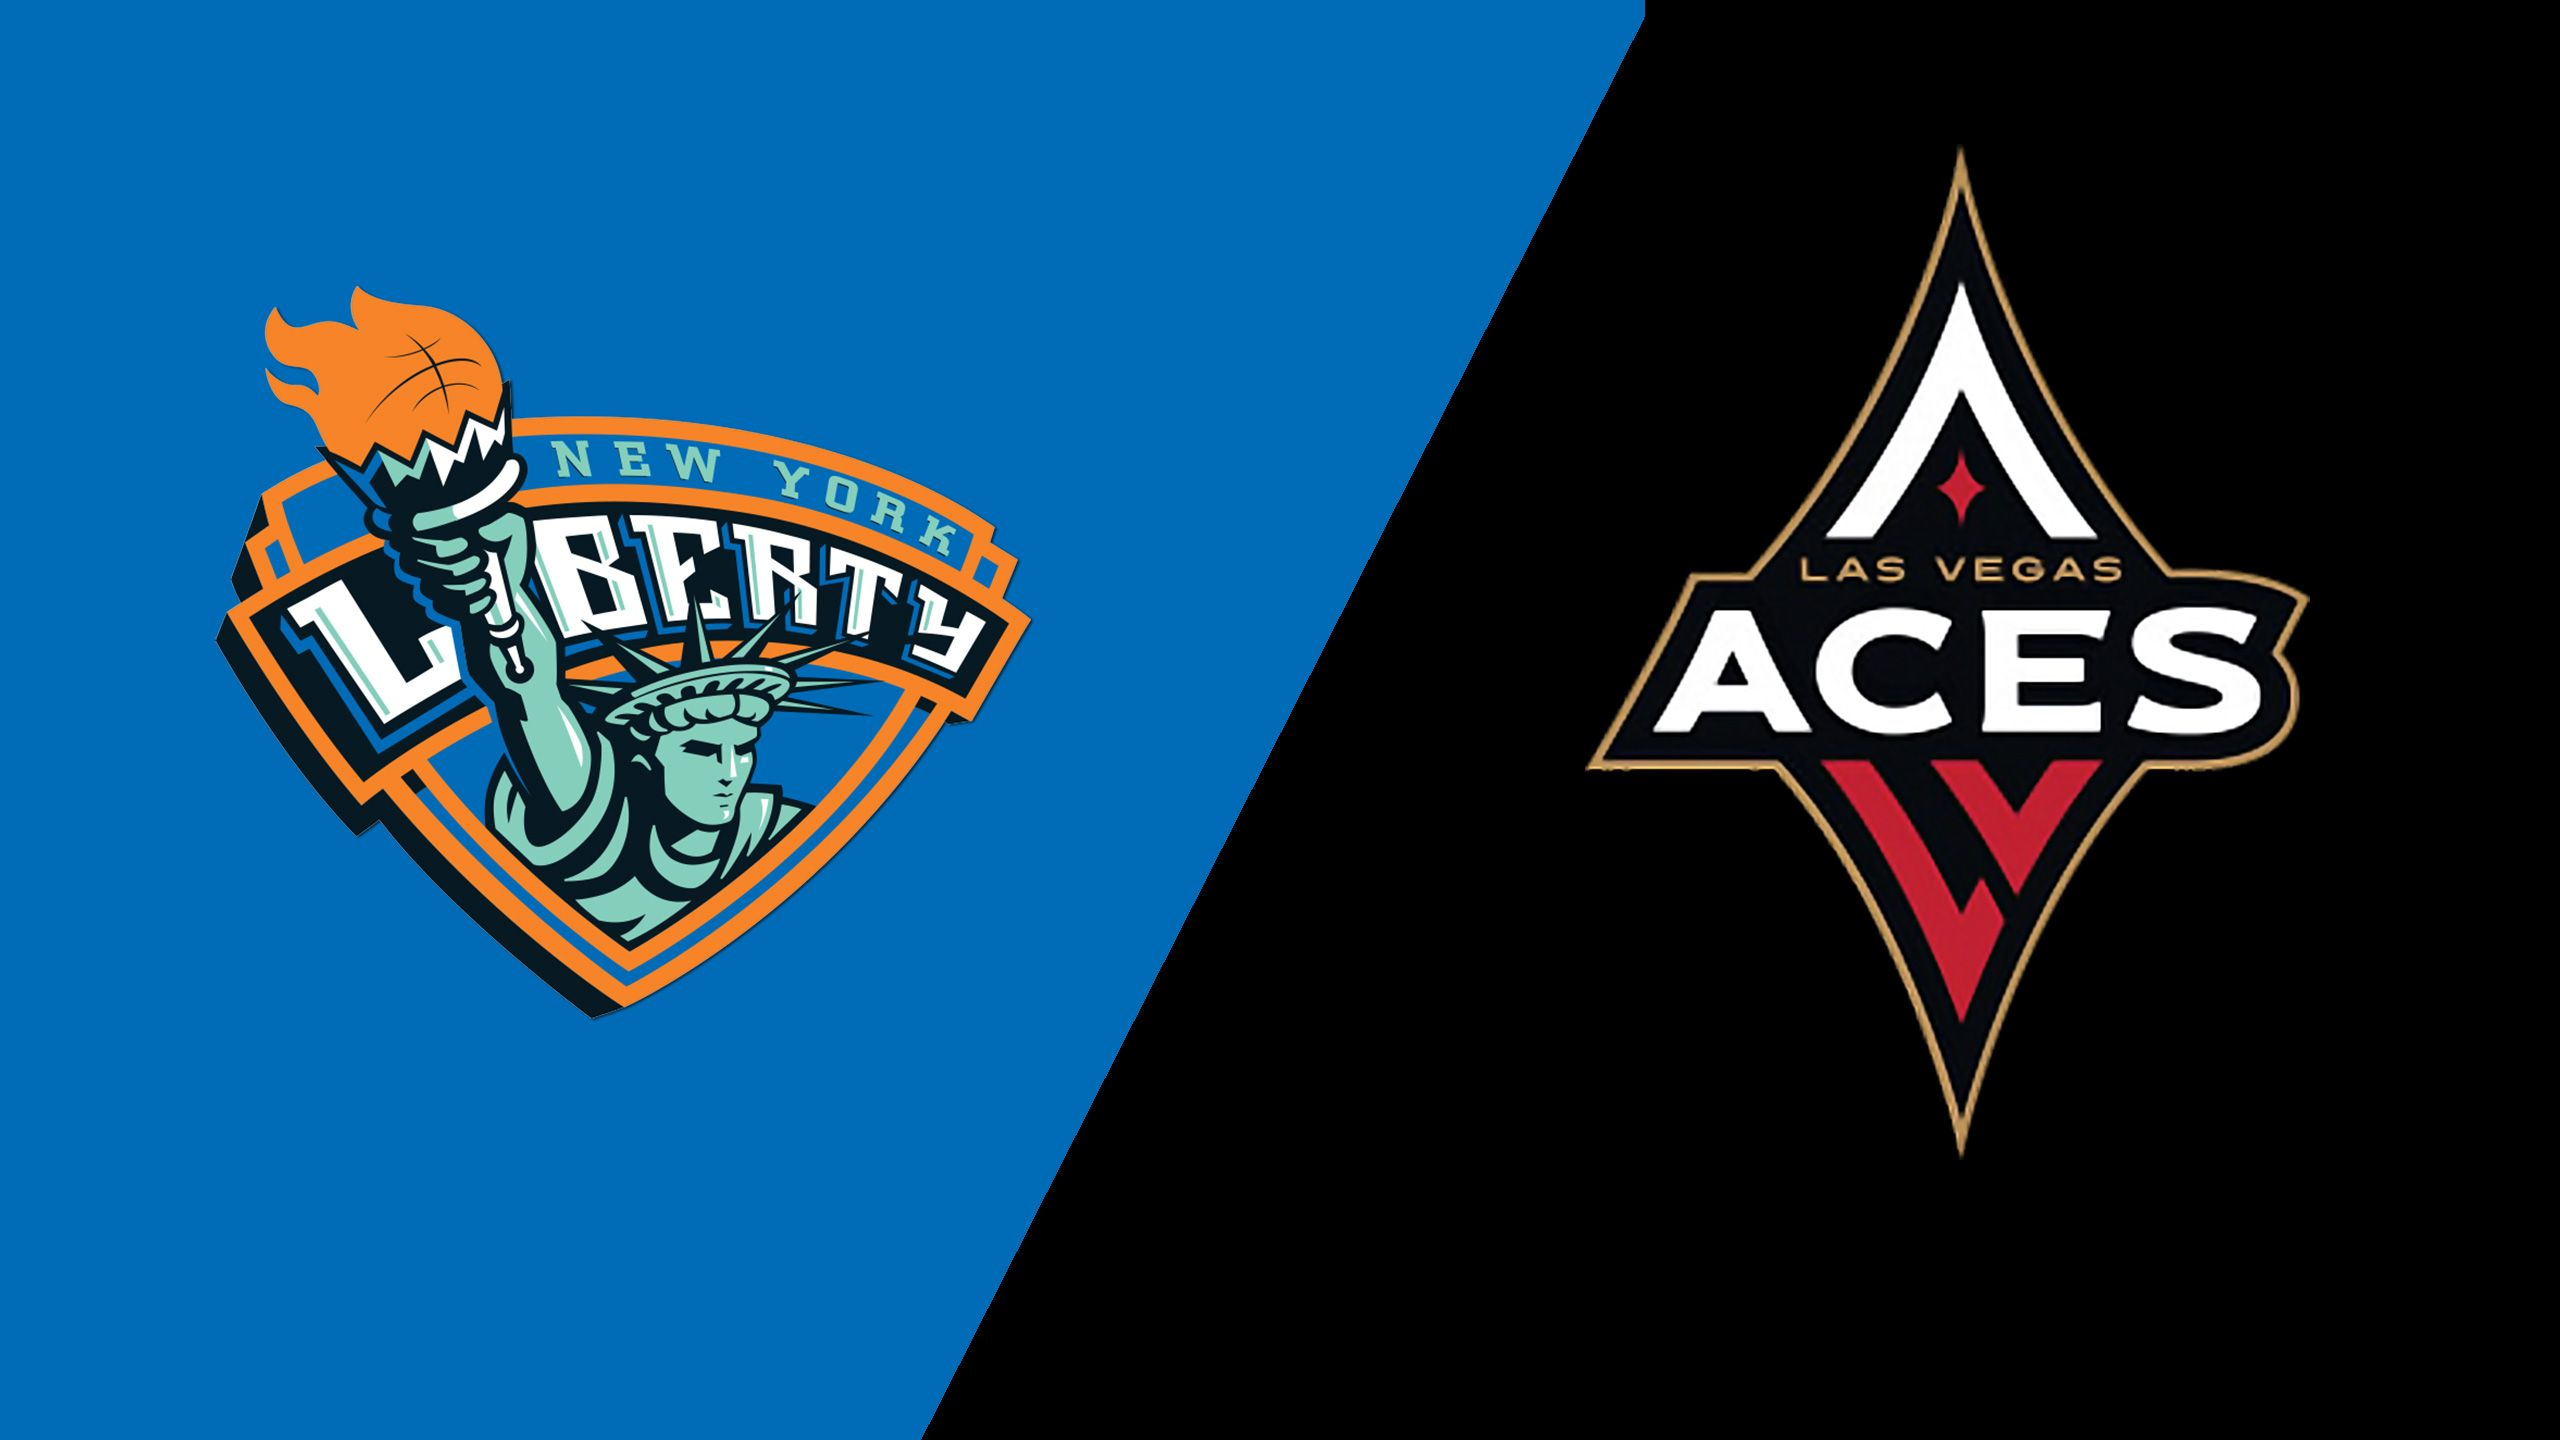 New York Liberty vs. Las Vegas Aces